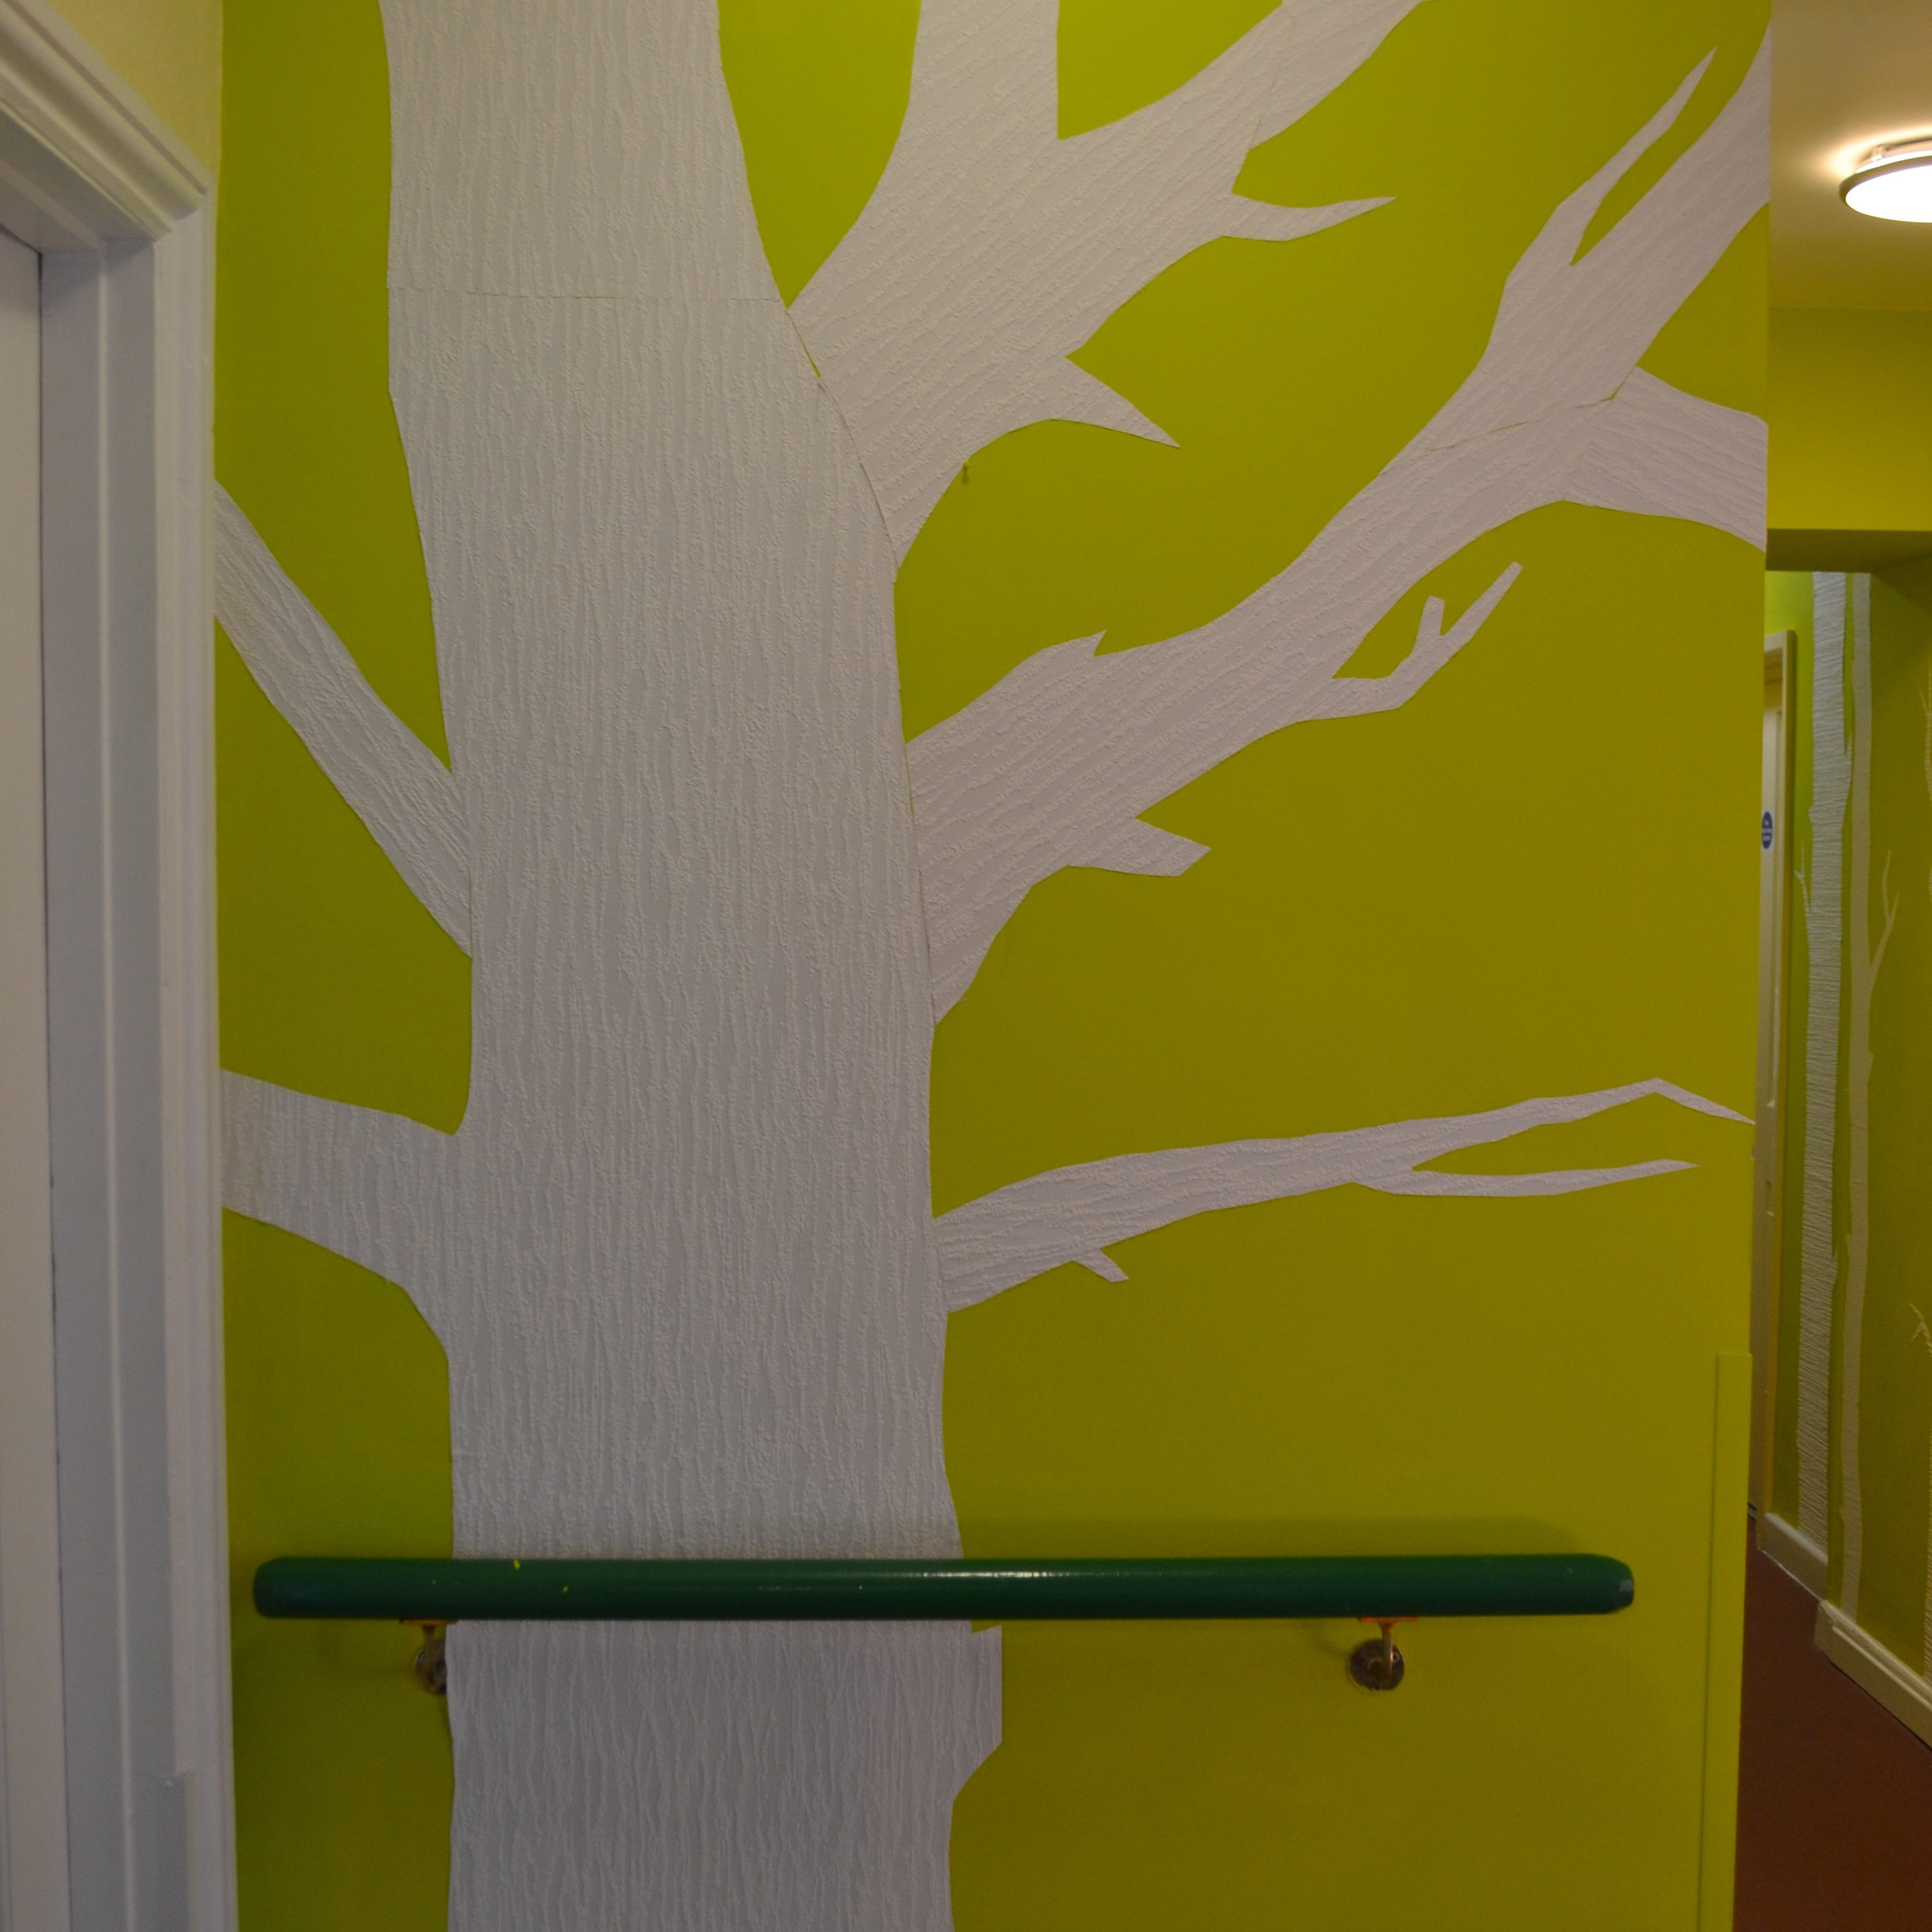 Shows green painted background with paper tree in white.